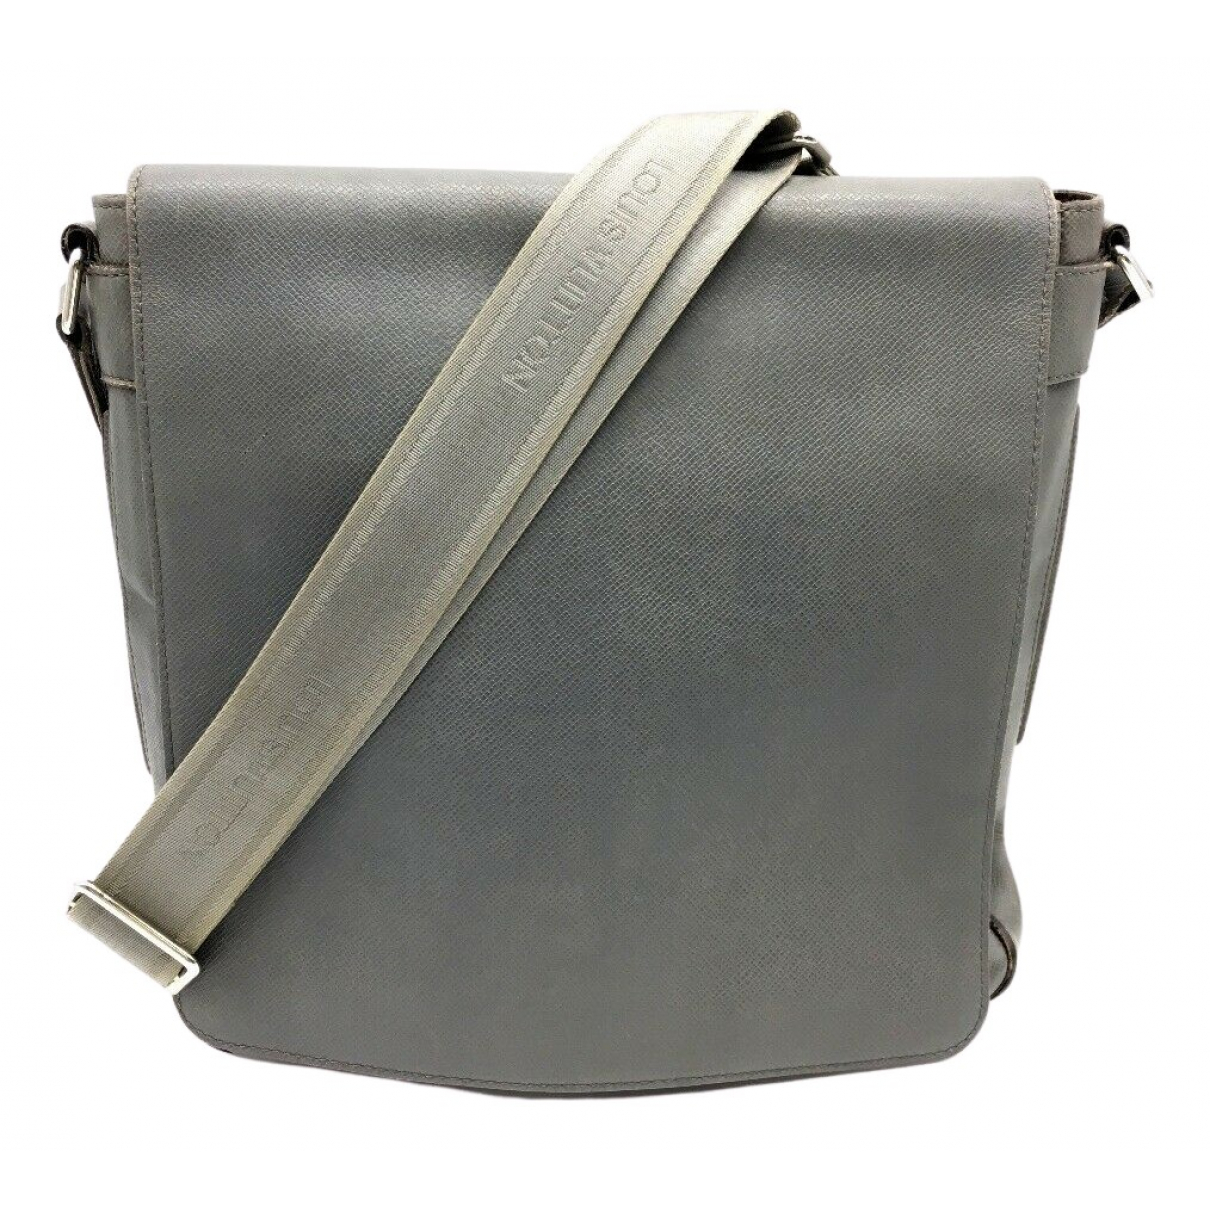 Louis Vuitton \N Handtasche in  Grau Leder